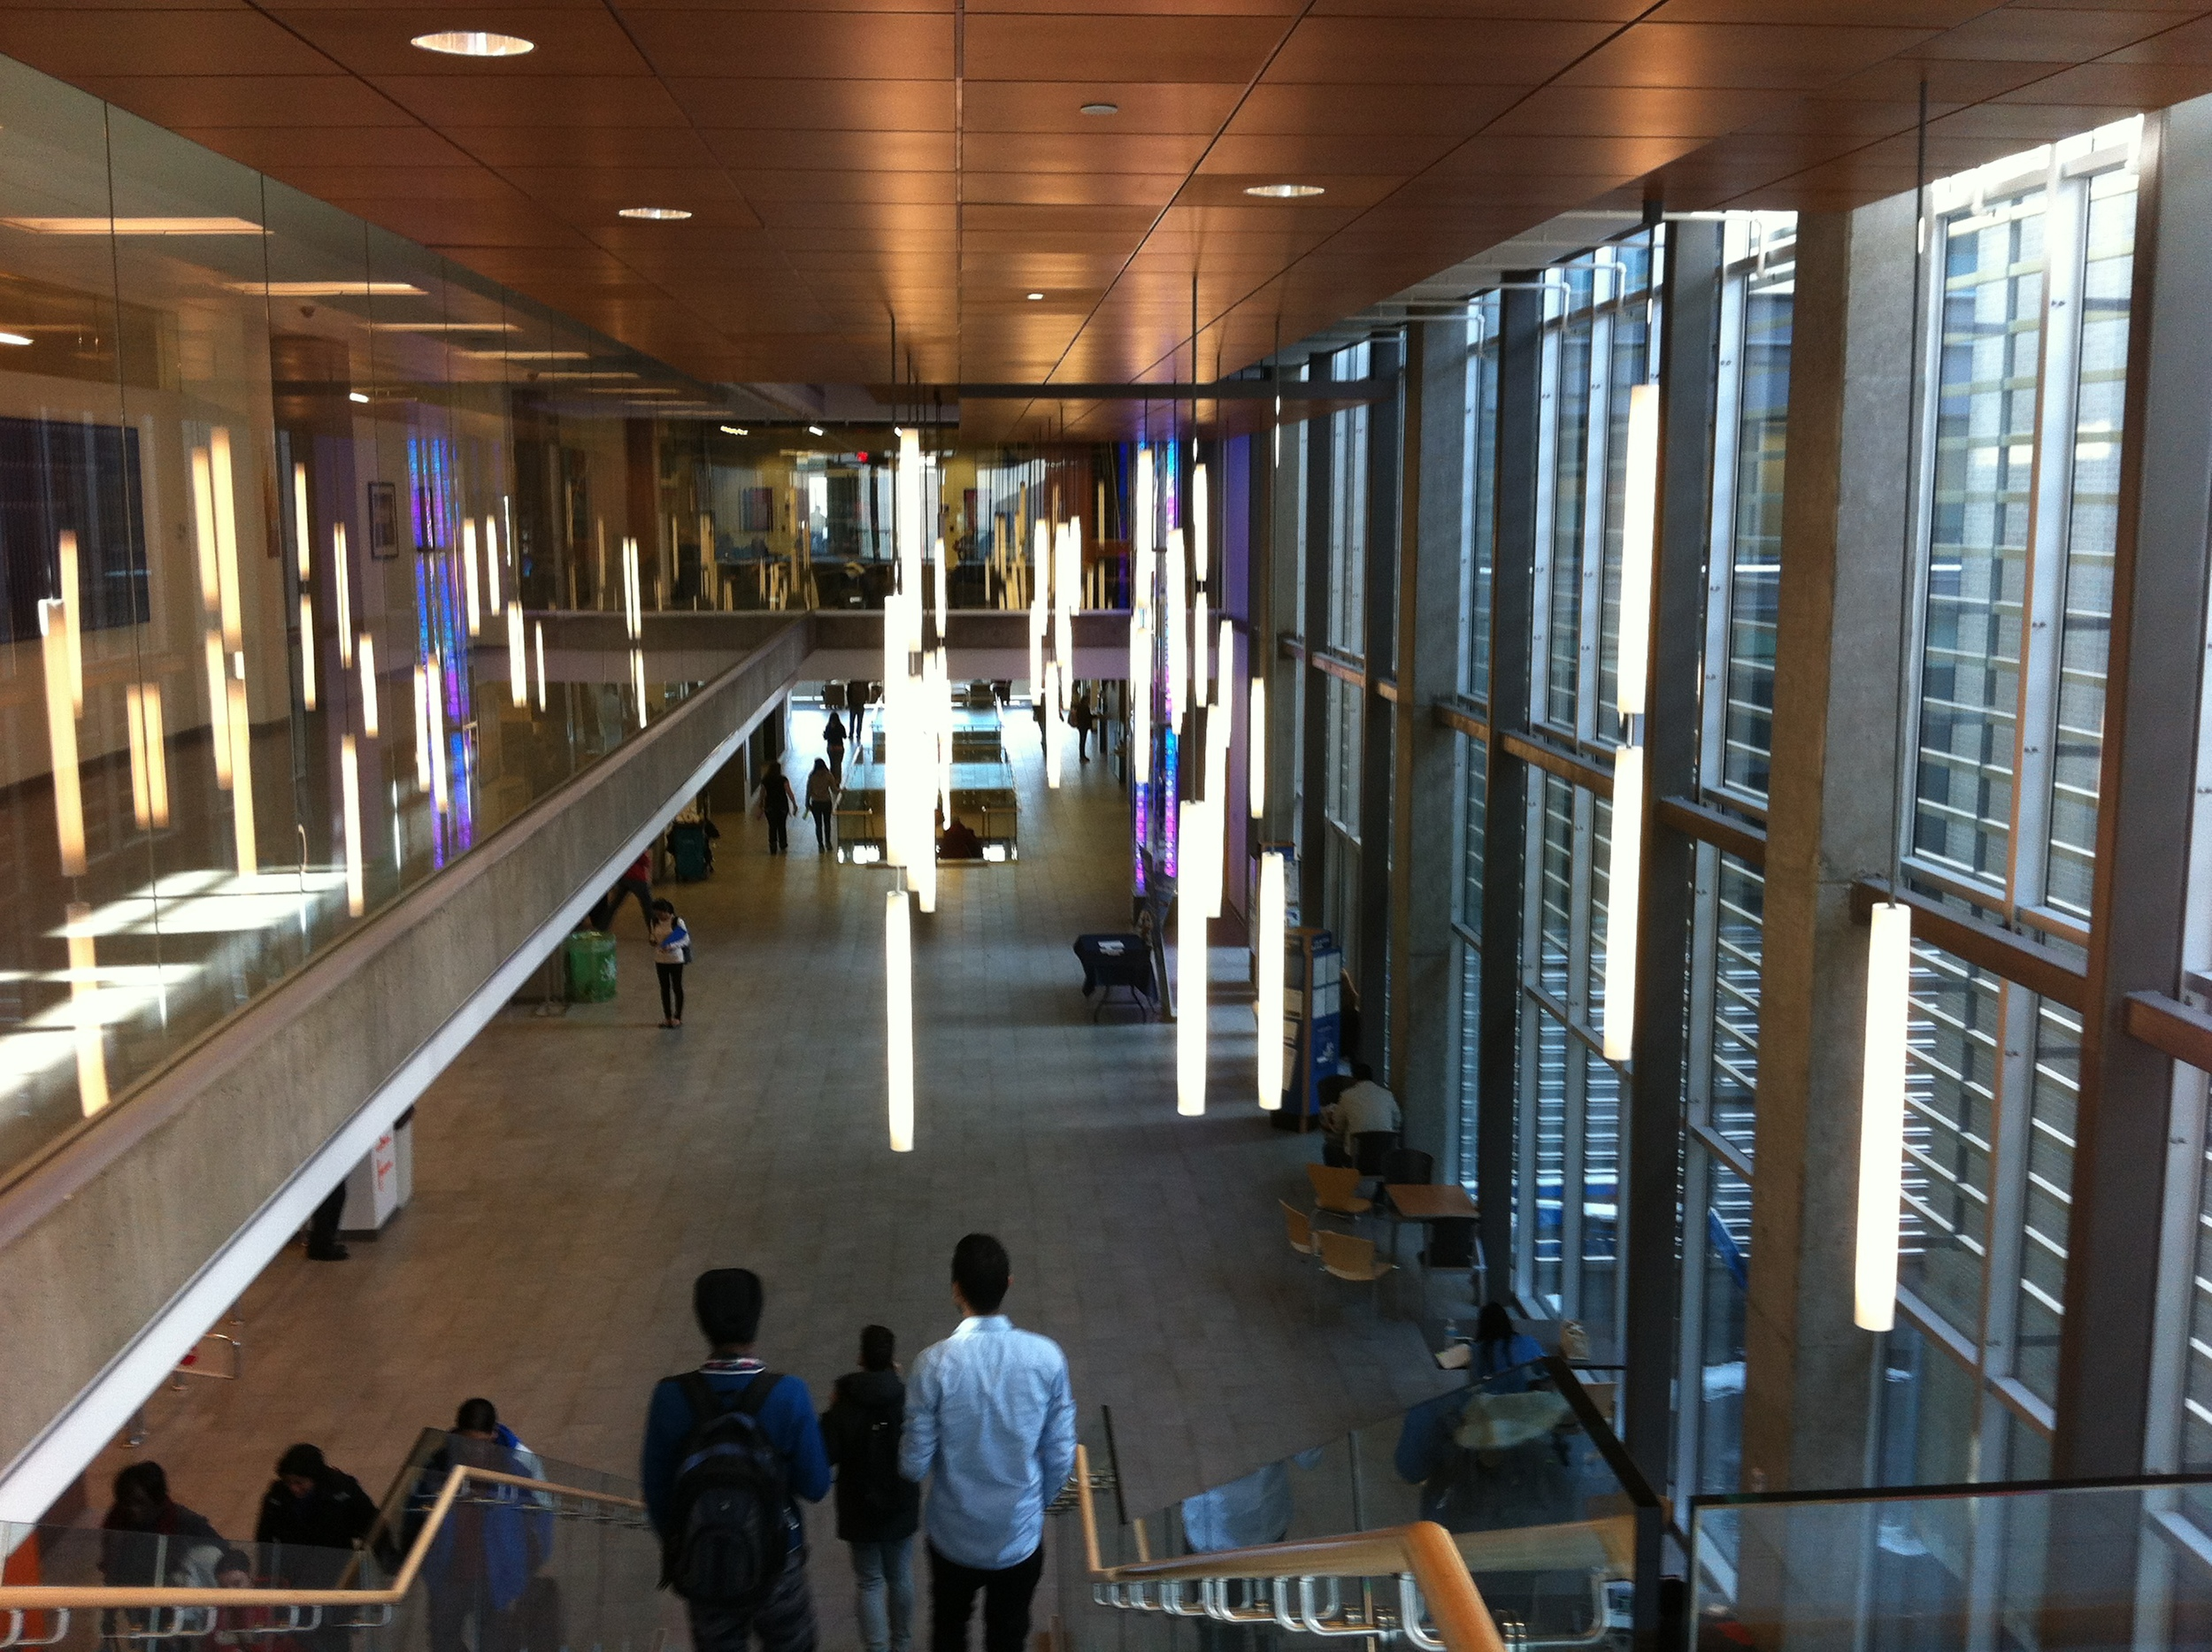 This is grand hall of the South Campus building which is a bee-hive of activity and serves as a wonderful public art gallery.